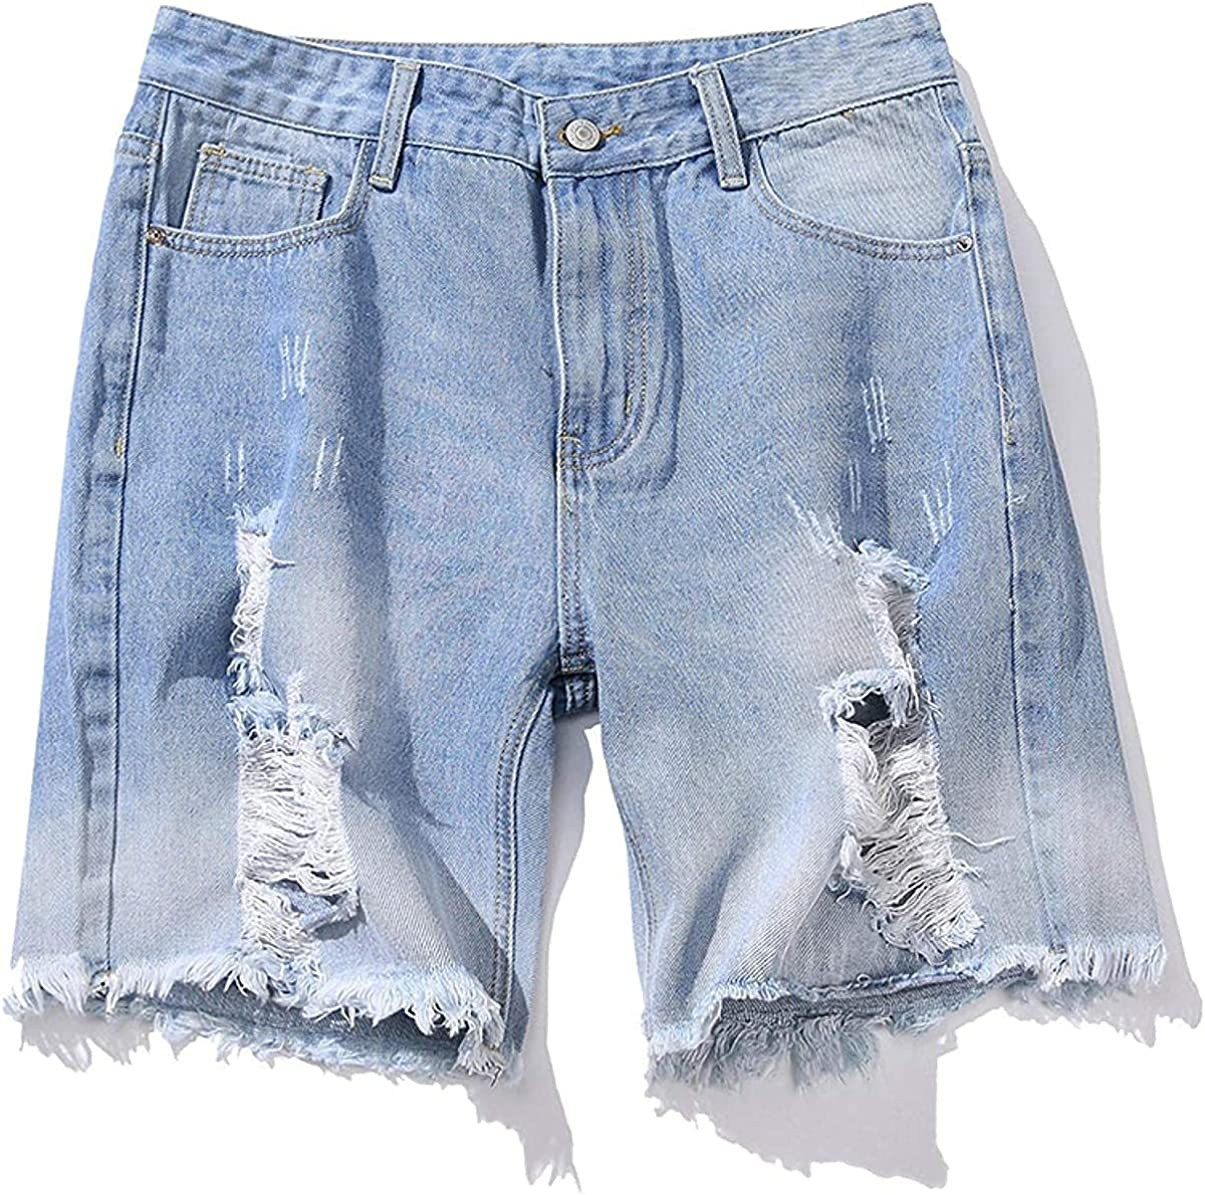 ZYUEER Men's Denim Shorts with Ripped Holes TornEdges Stretch Slim Fit Light Blue